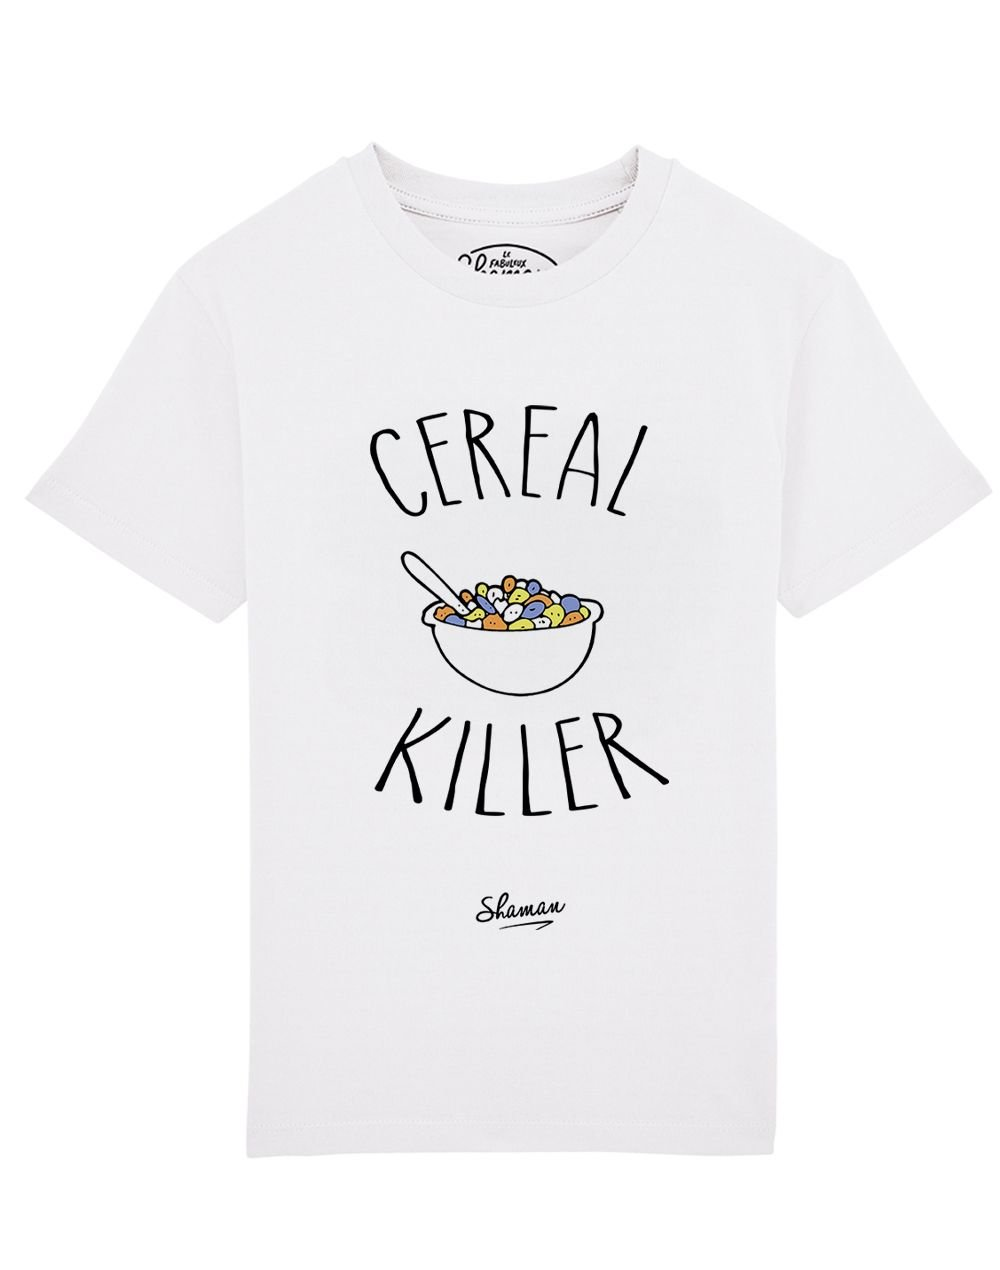 Tee-shirt cereal killer